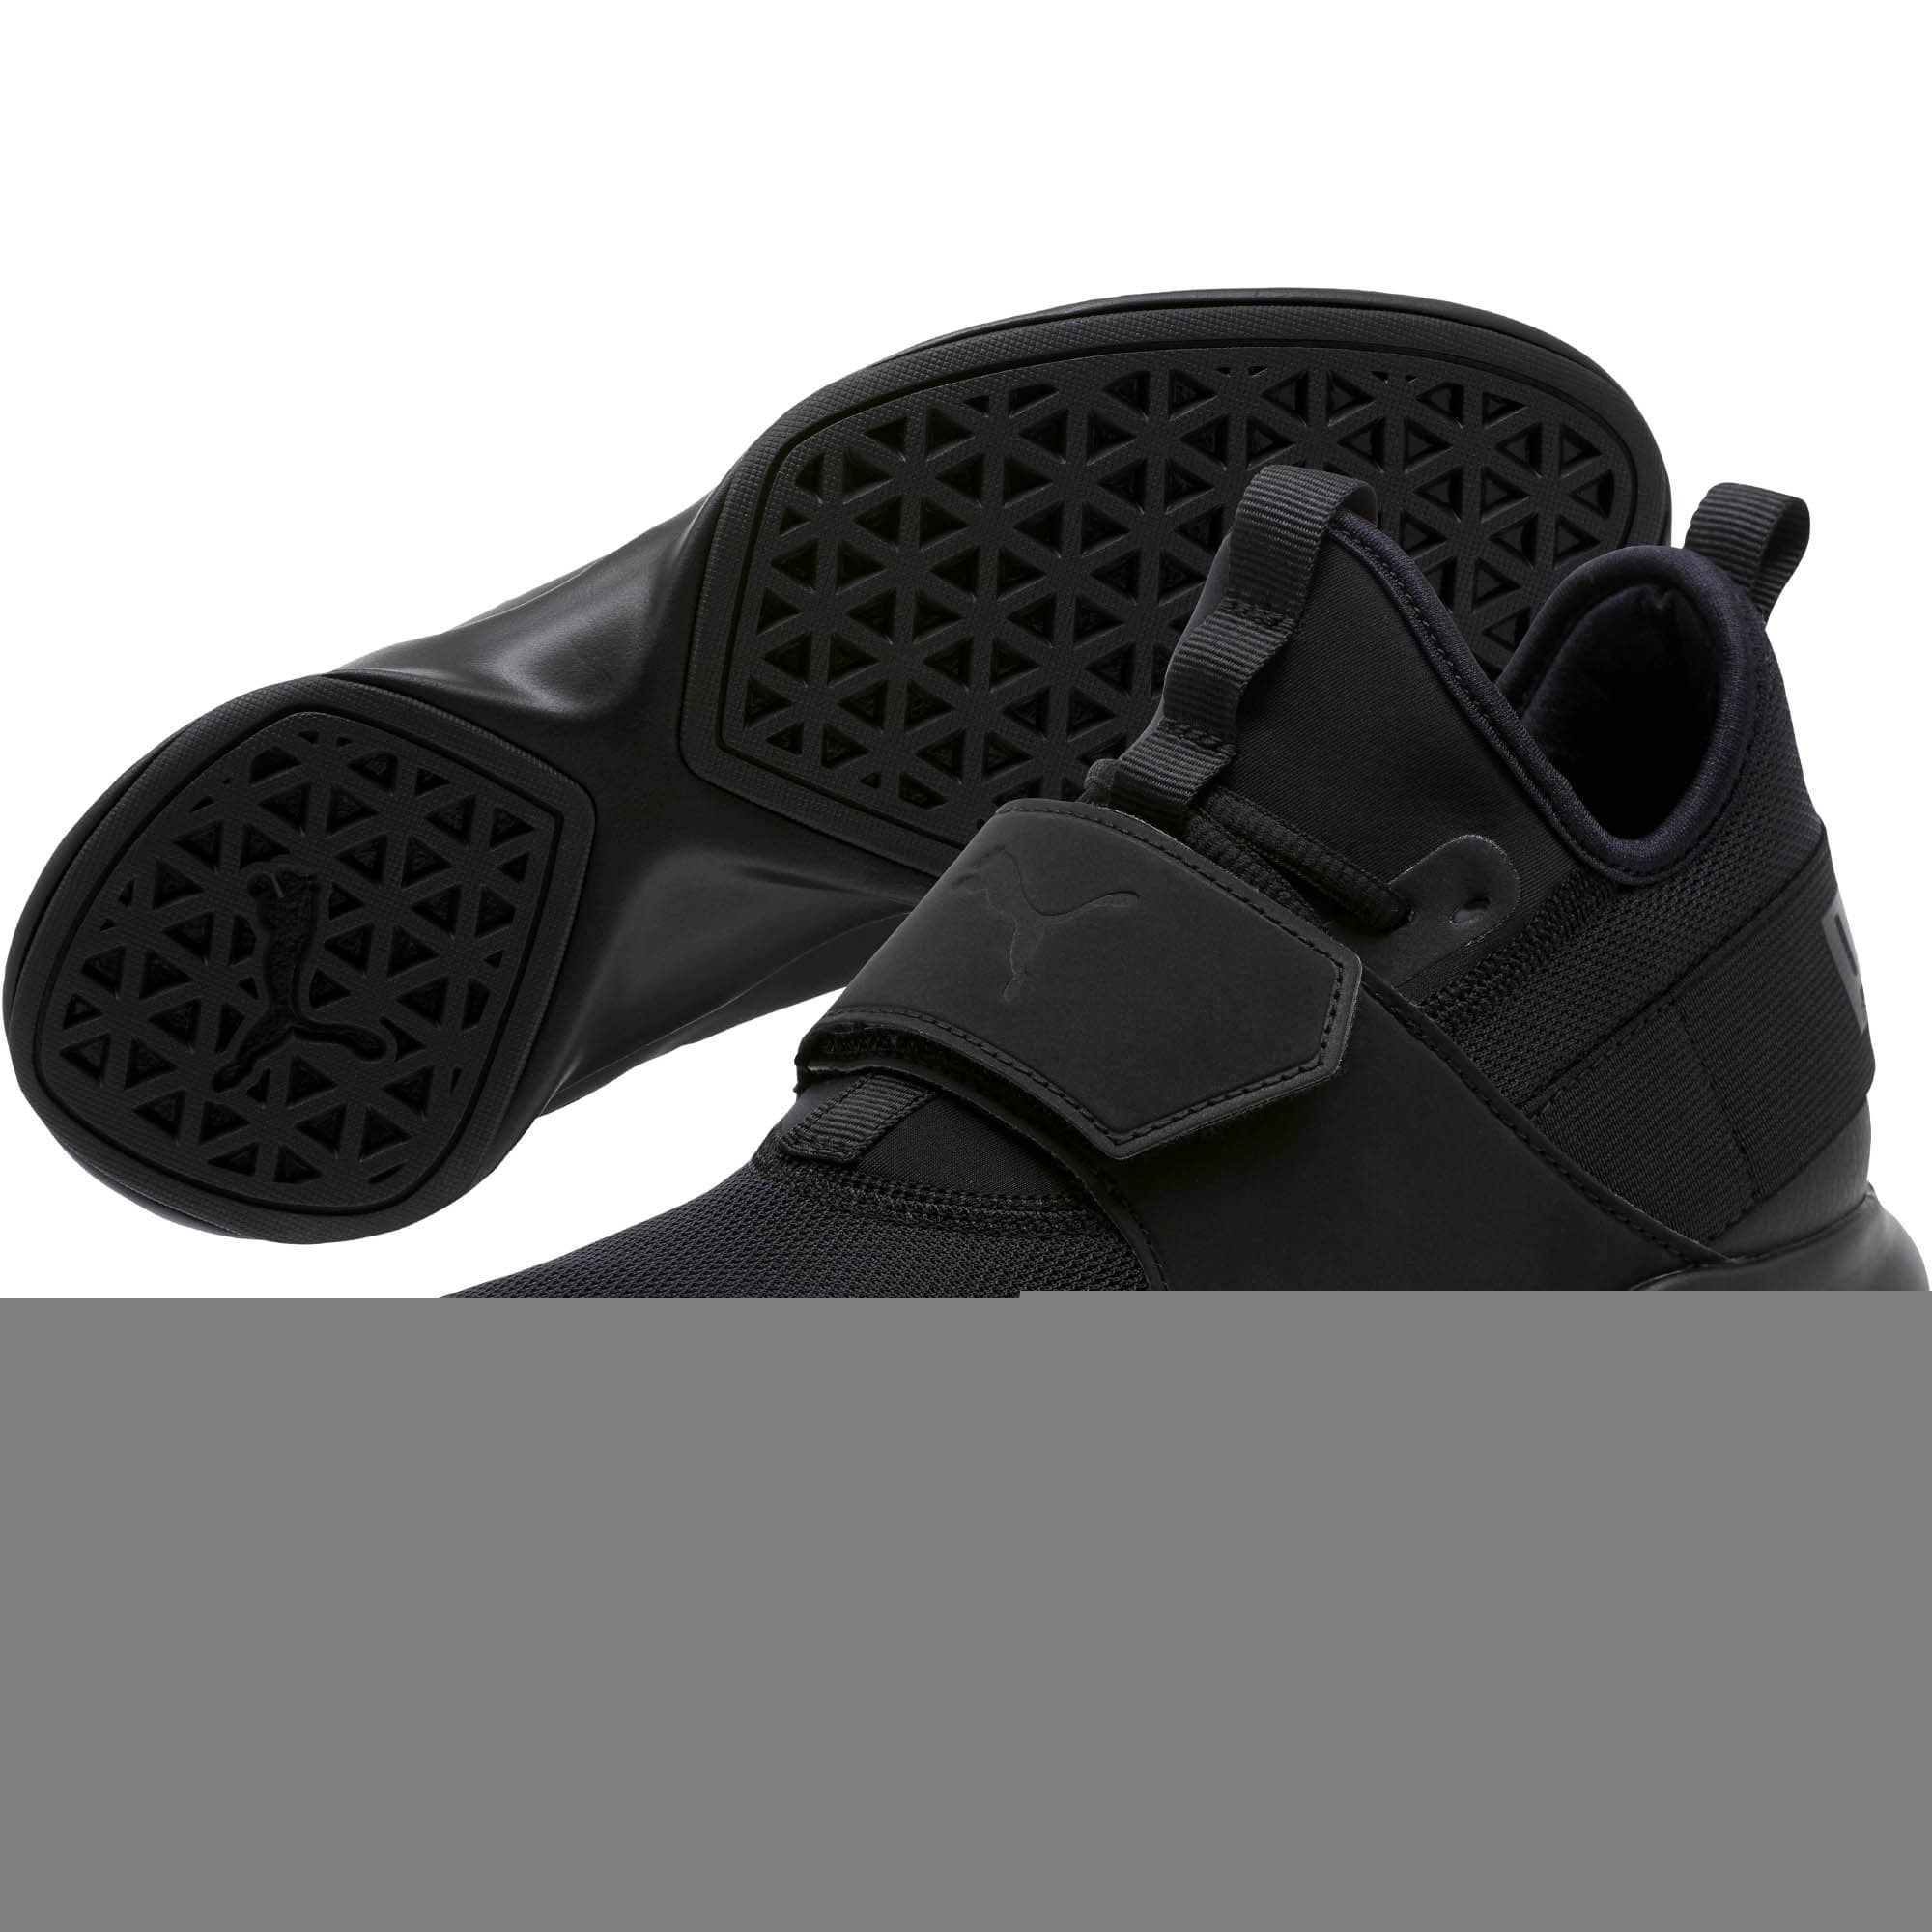 Thumbnail 2 of Dare Trainer Women's Trainers, Puma Black-Puma Black, medium